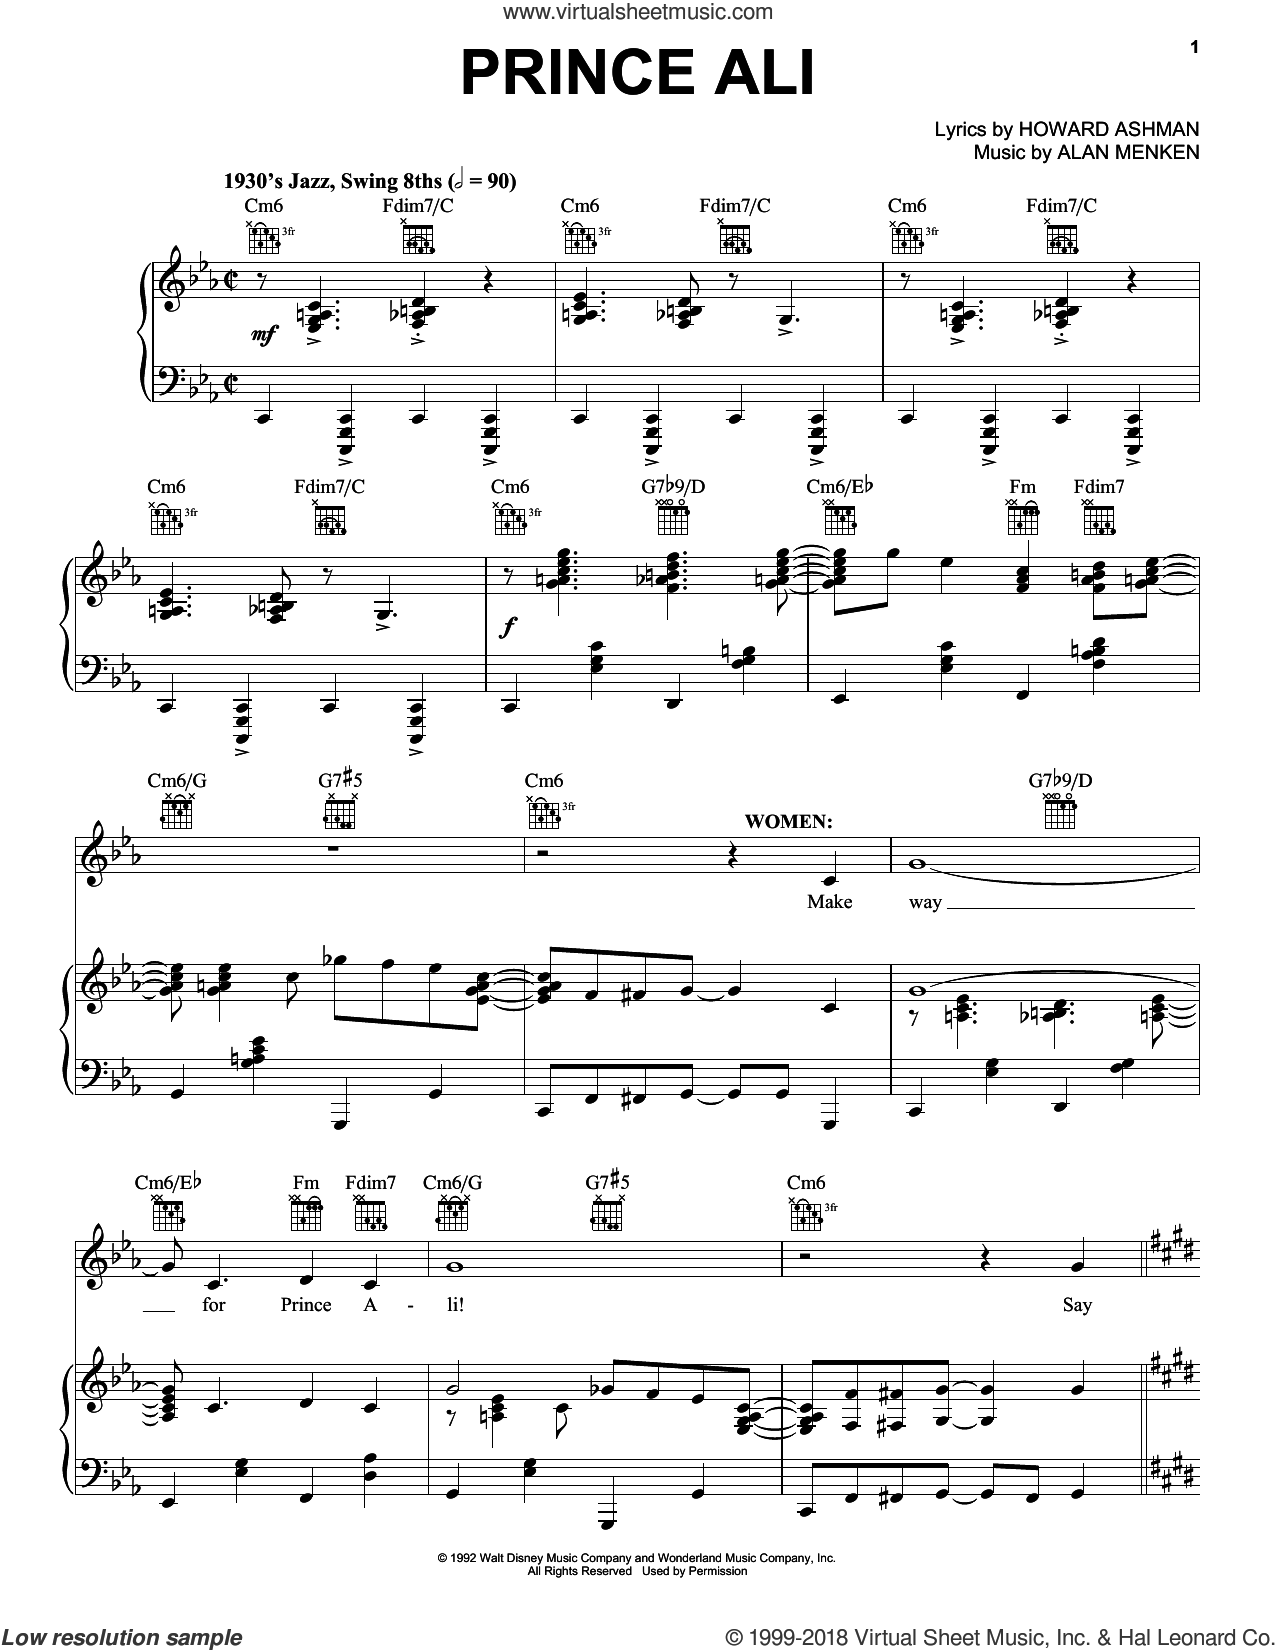 Prince Ali sheet music for voice, piano or guitar by Alan Menken and Howard Ashman, intermediate skill level